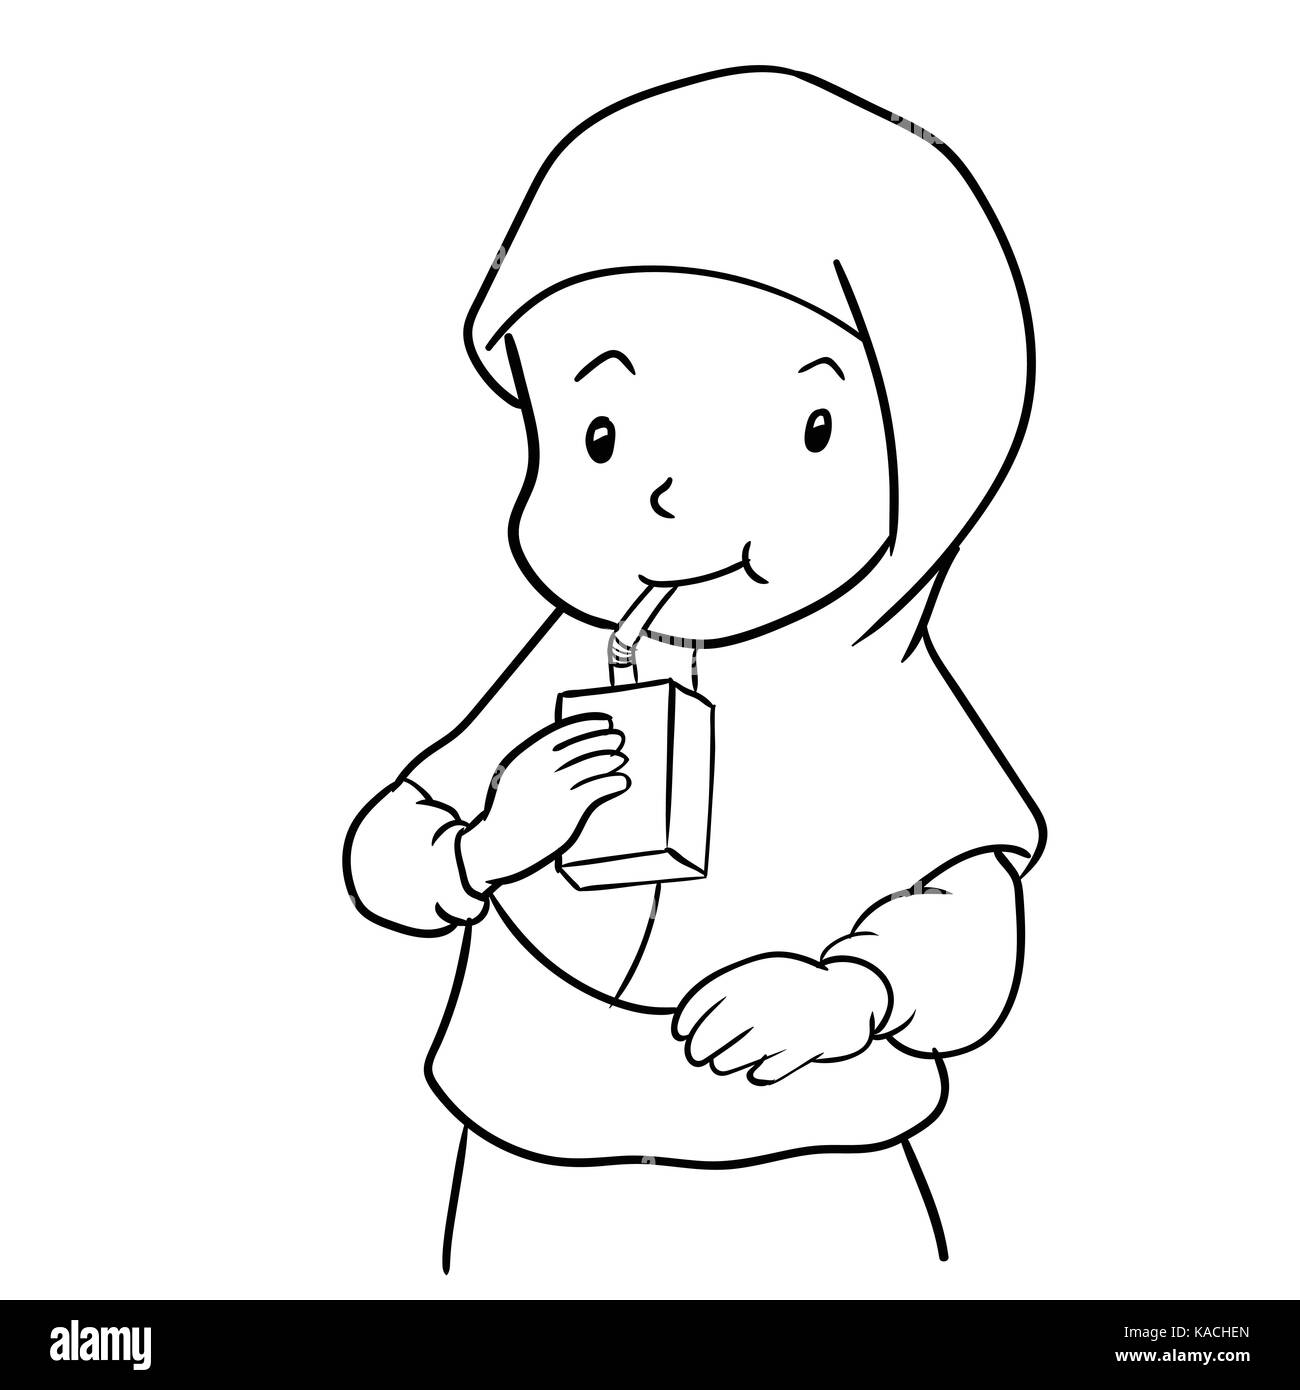 Hand drawing of muslim girl drinking milk isolated on white